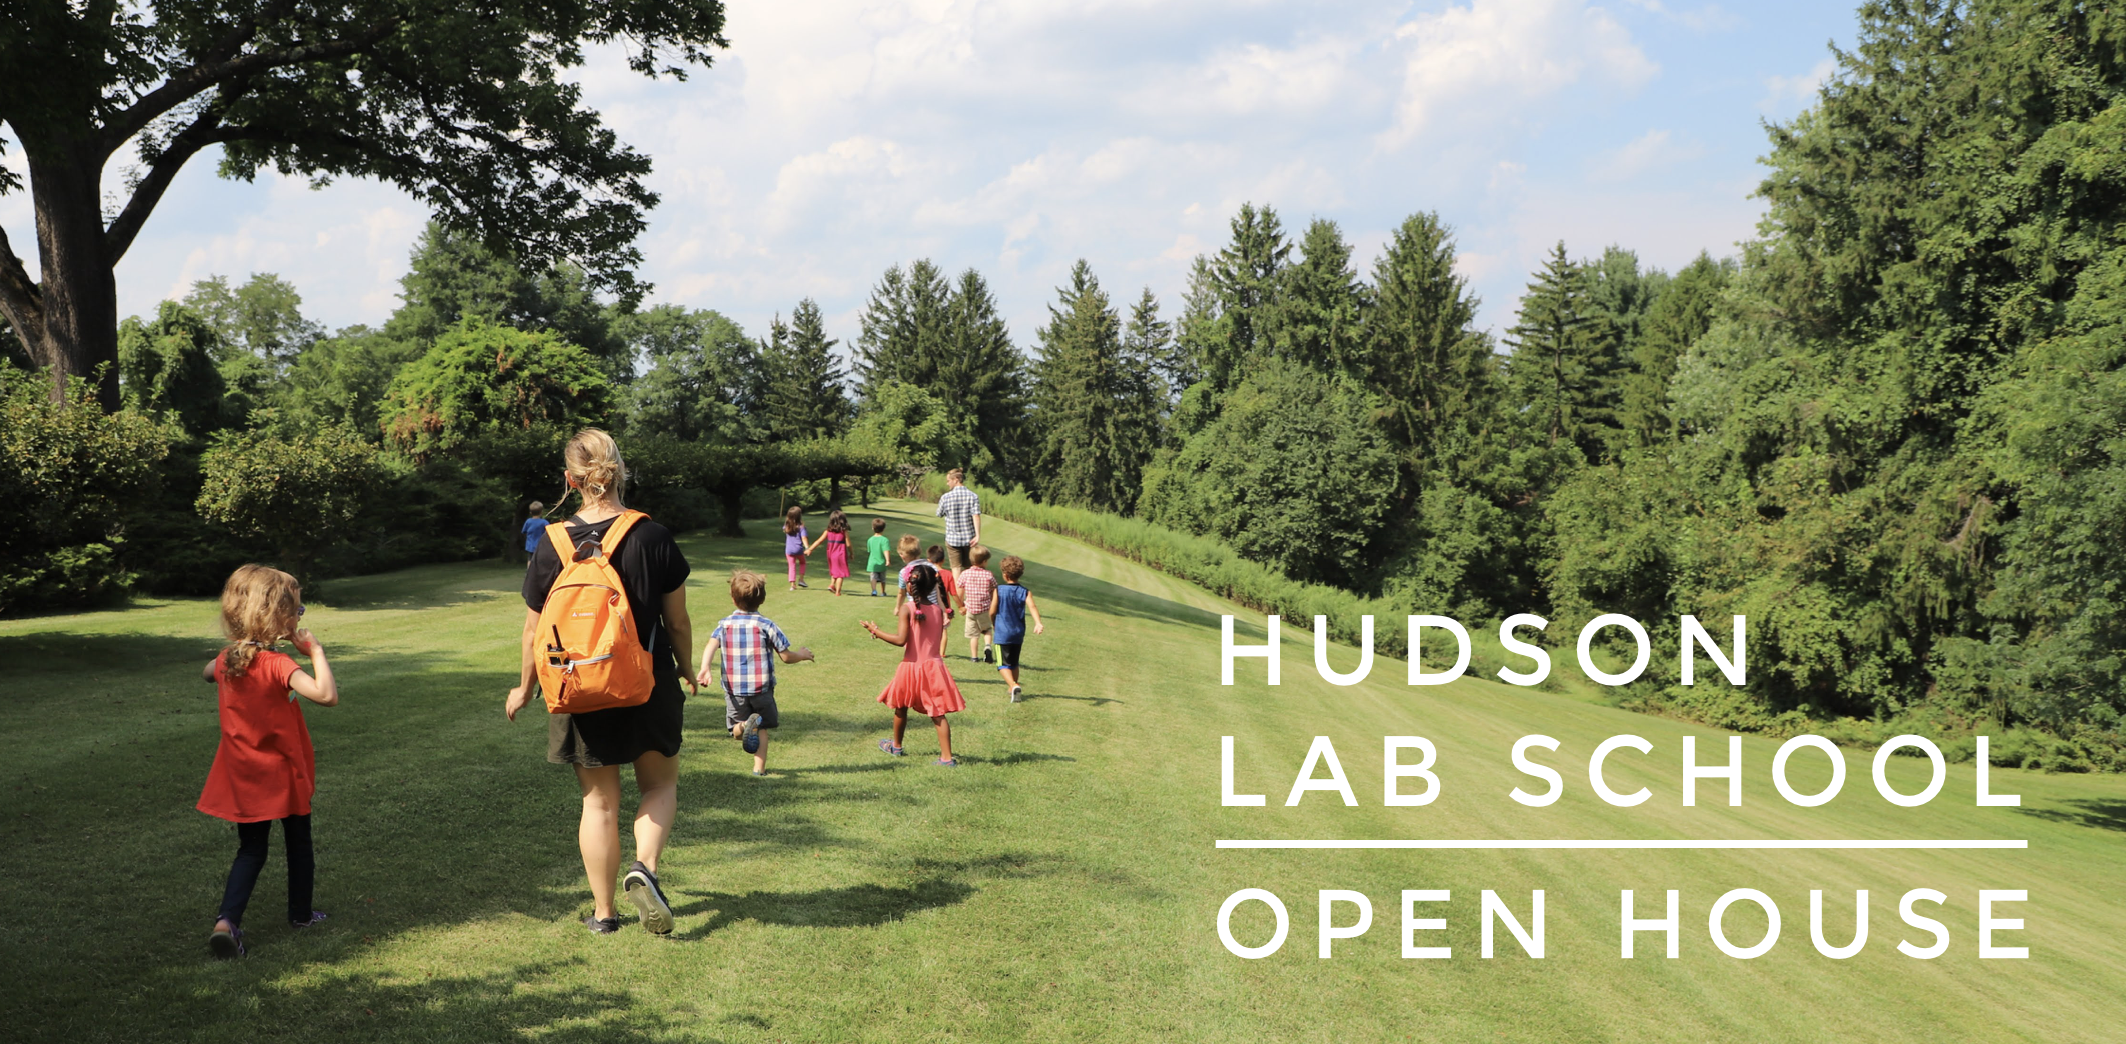 Hudson Lab School Open House.png